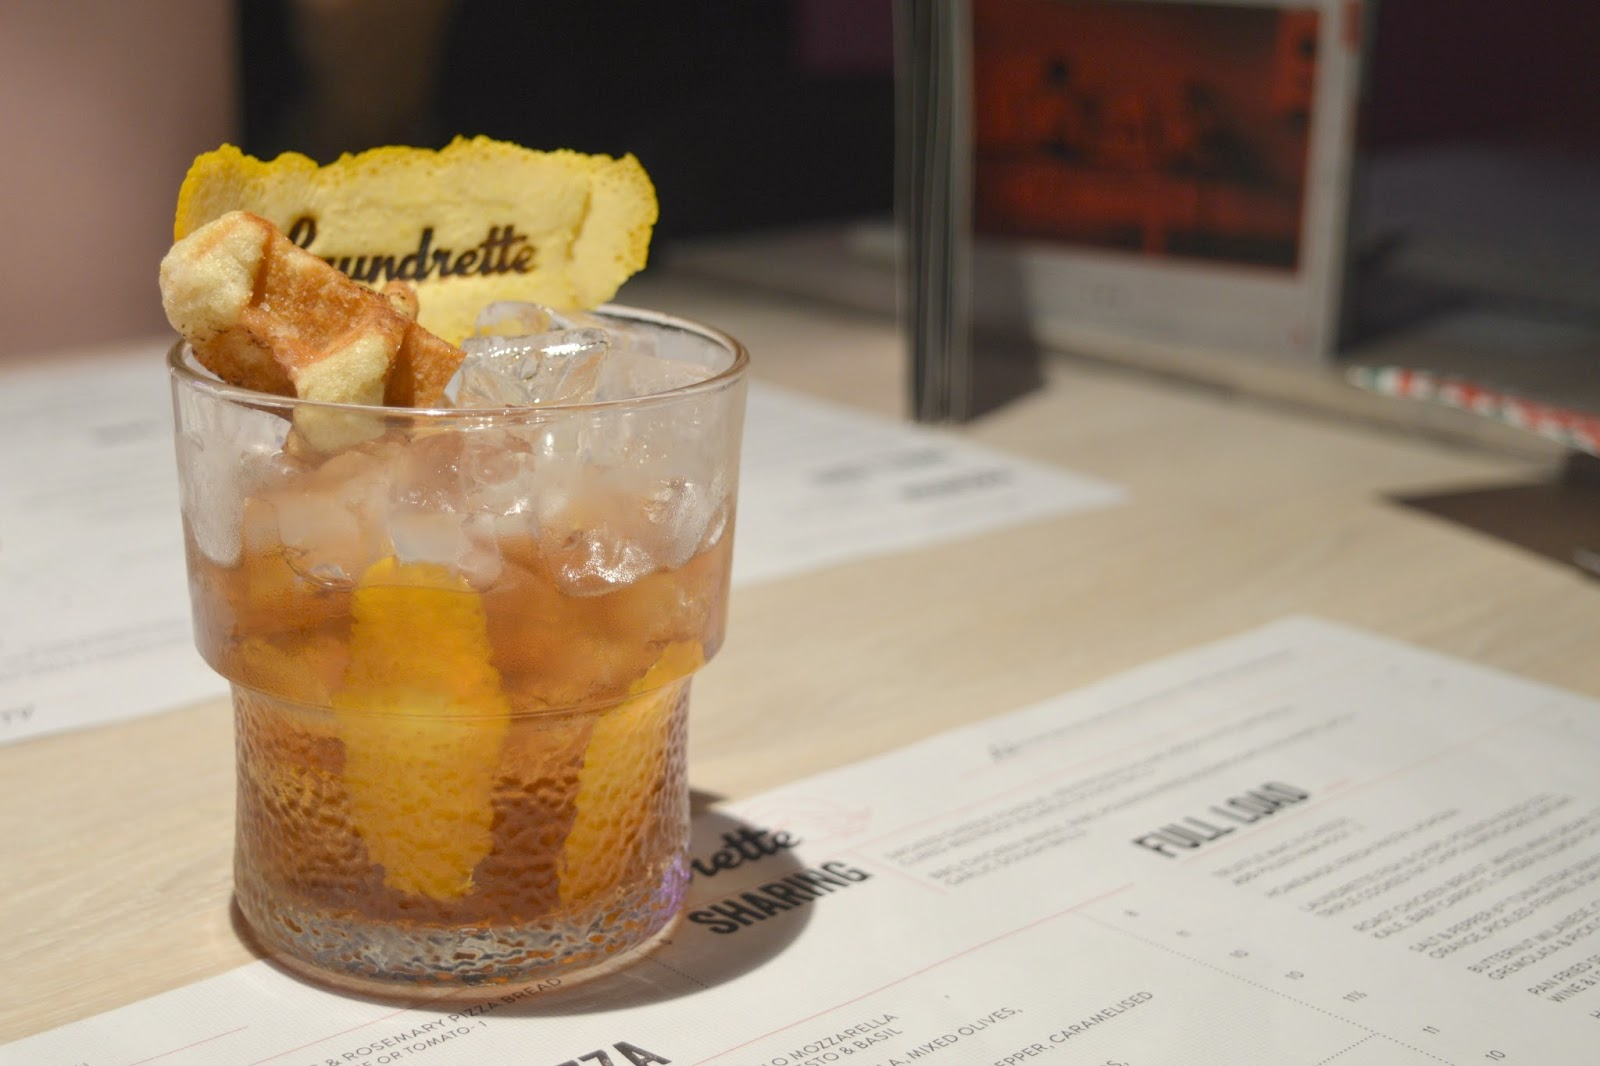 The Laundrette, Newcastle - Wafflin on Old Fashioned